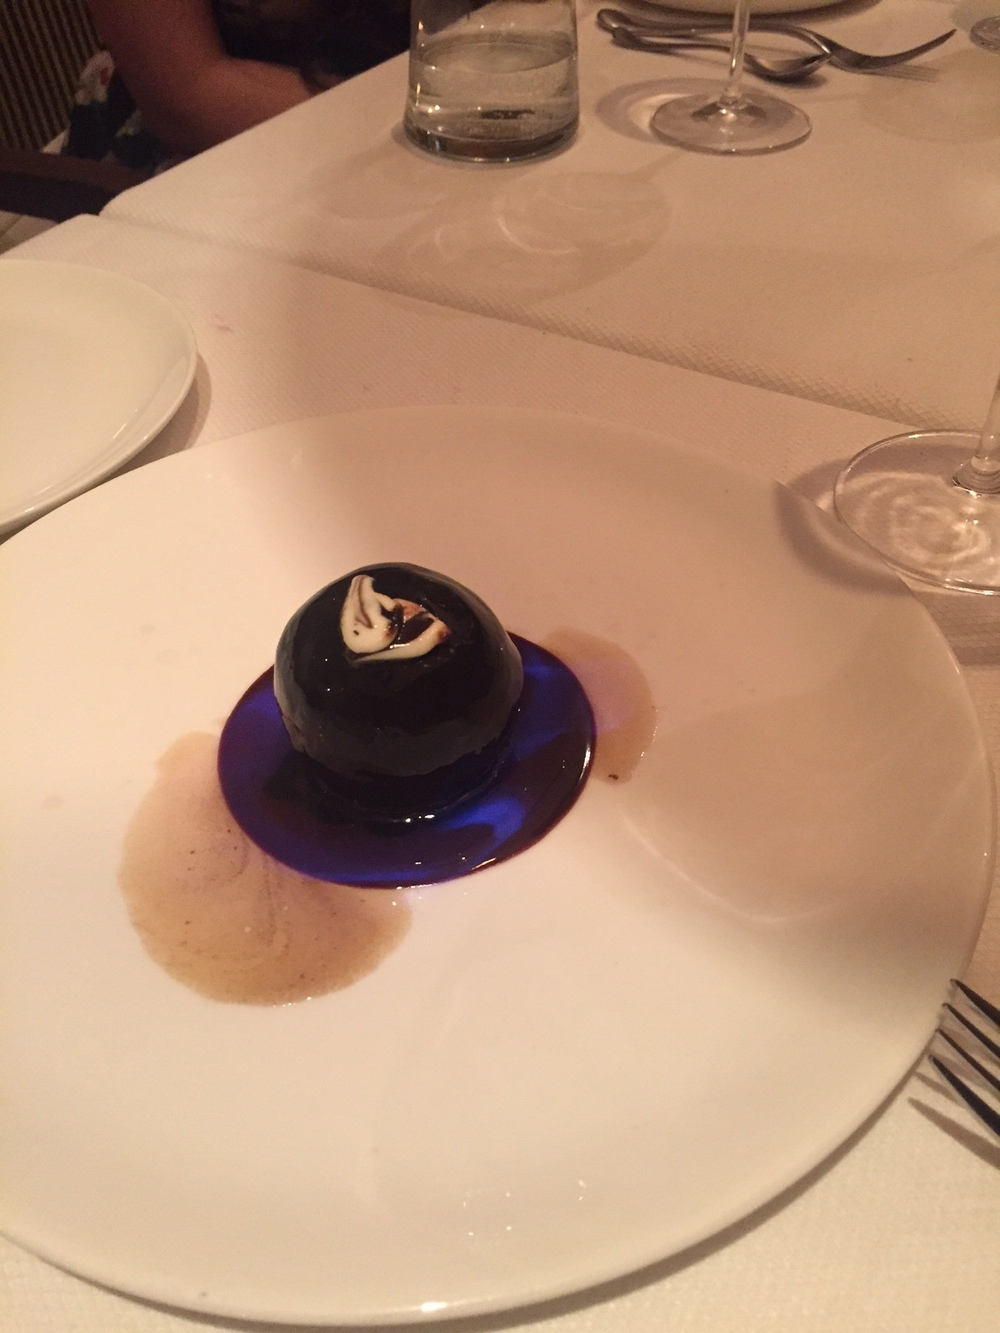 'Old monk' Rum Ball, 70% Valrhona Chocolate Sauce